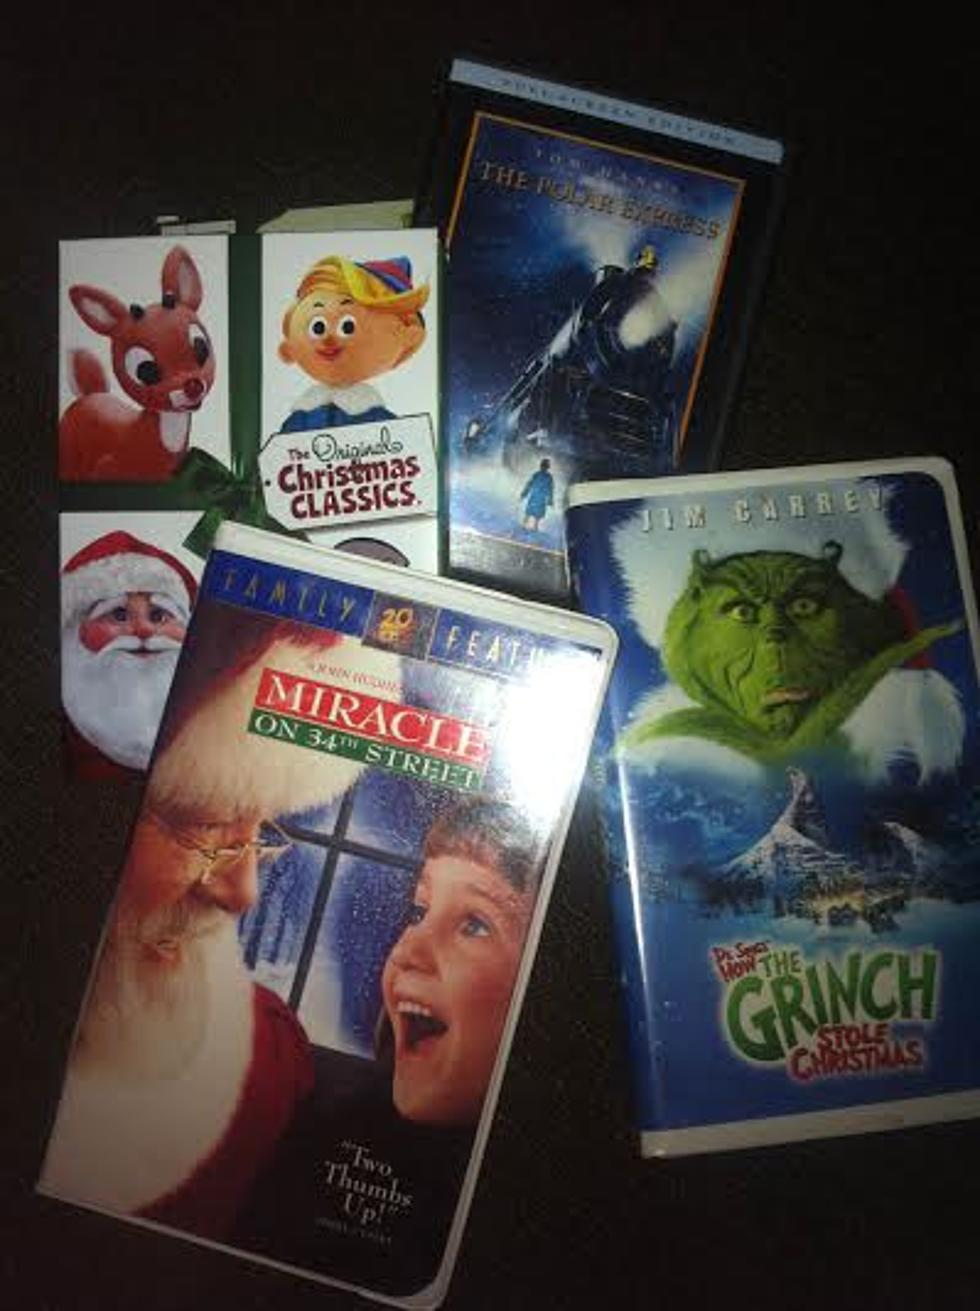 Best Holiday Movies for Kids, Humor and The True Meaning of Christmas